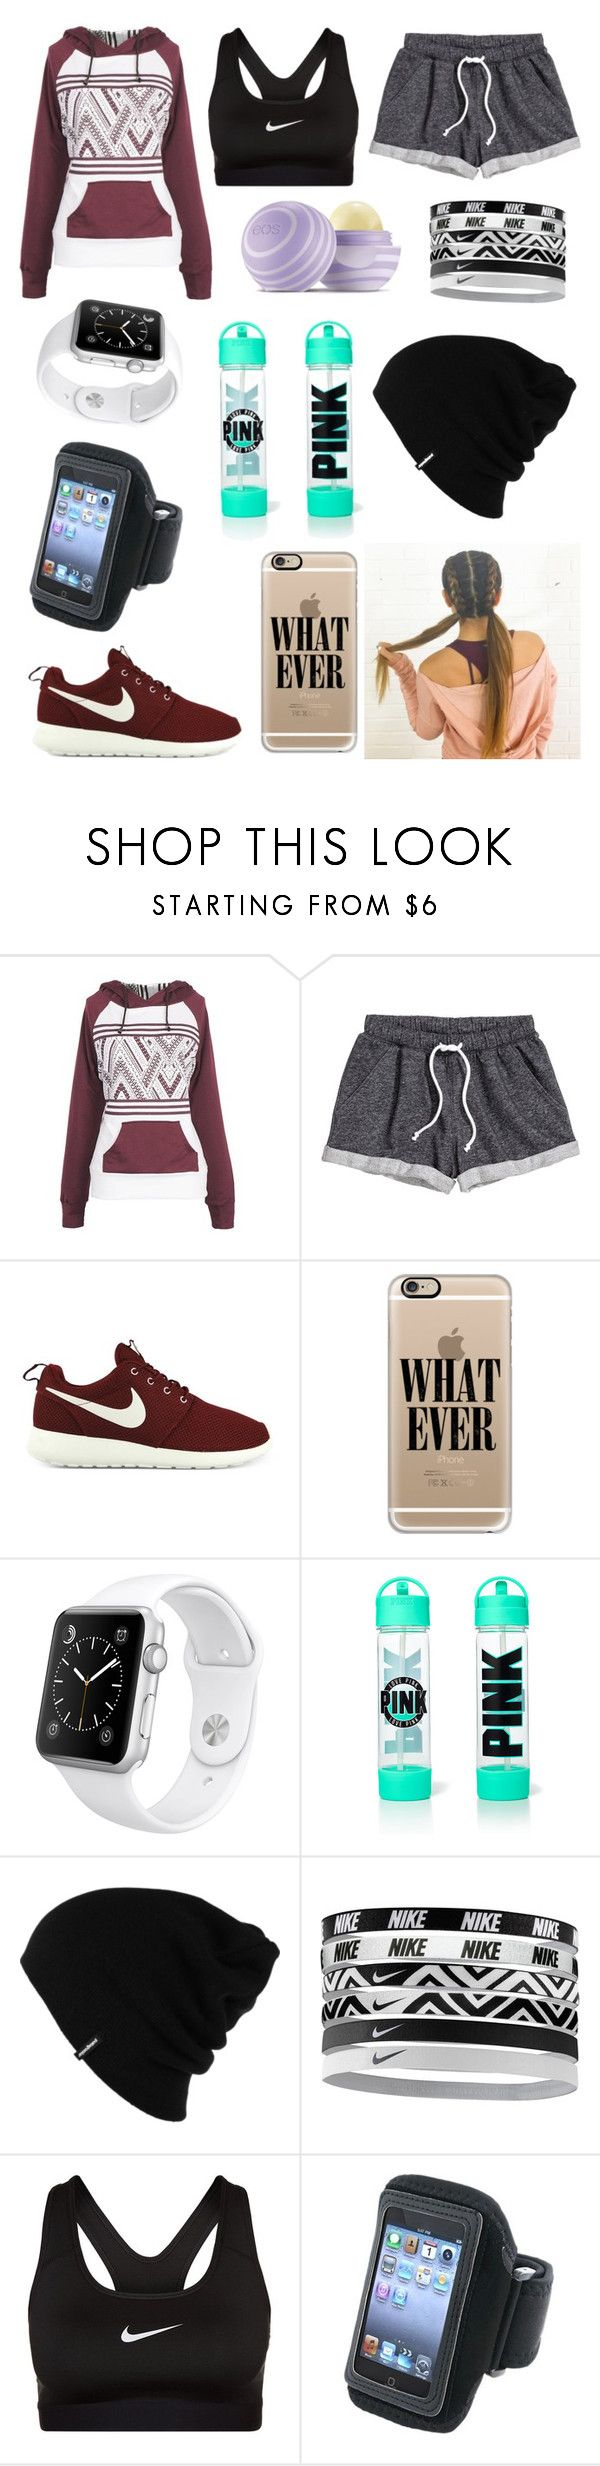 """jogging"" by justine-maheux ❤ liked on Polyvore featuring H&M, NIKE, Casetify, Apple, Patagonia and Eos"